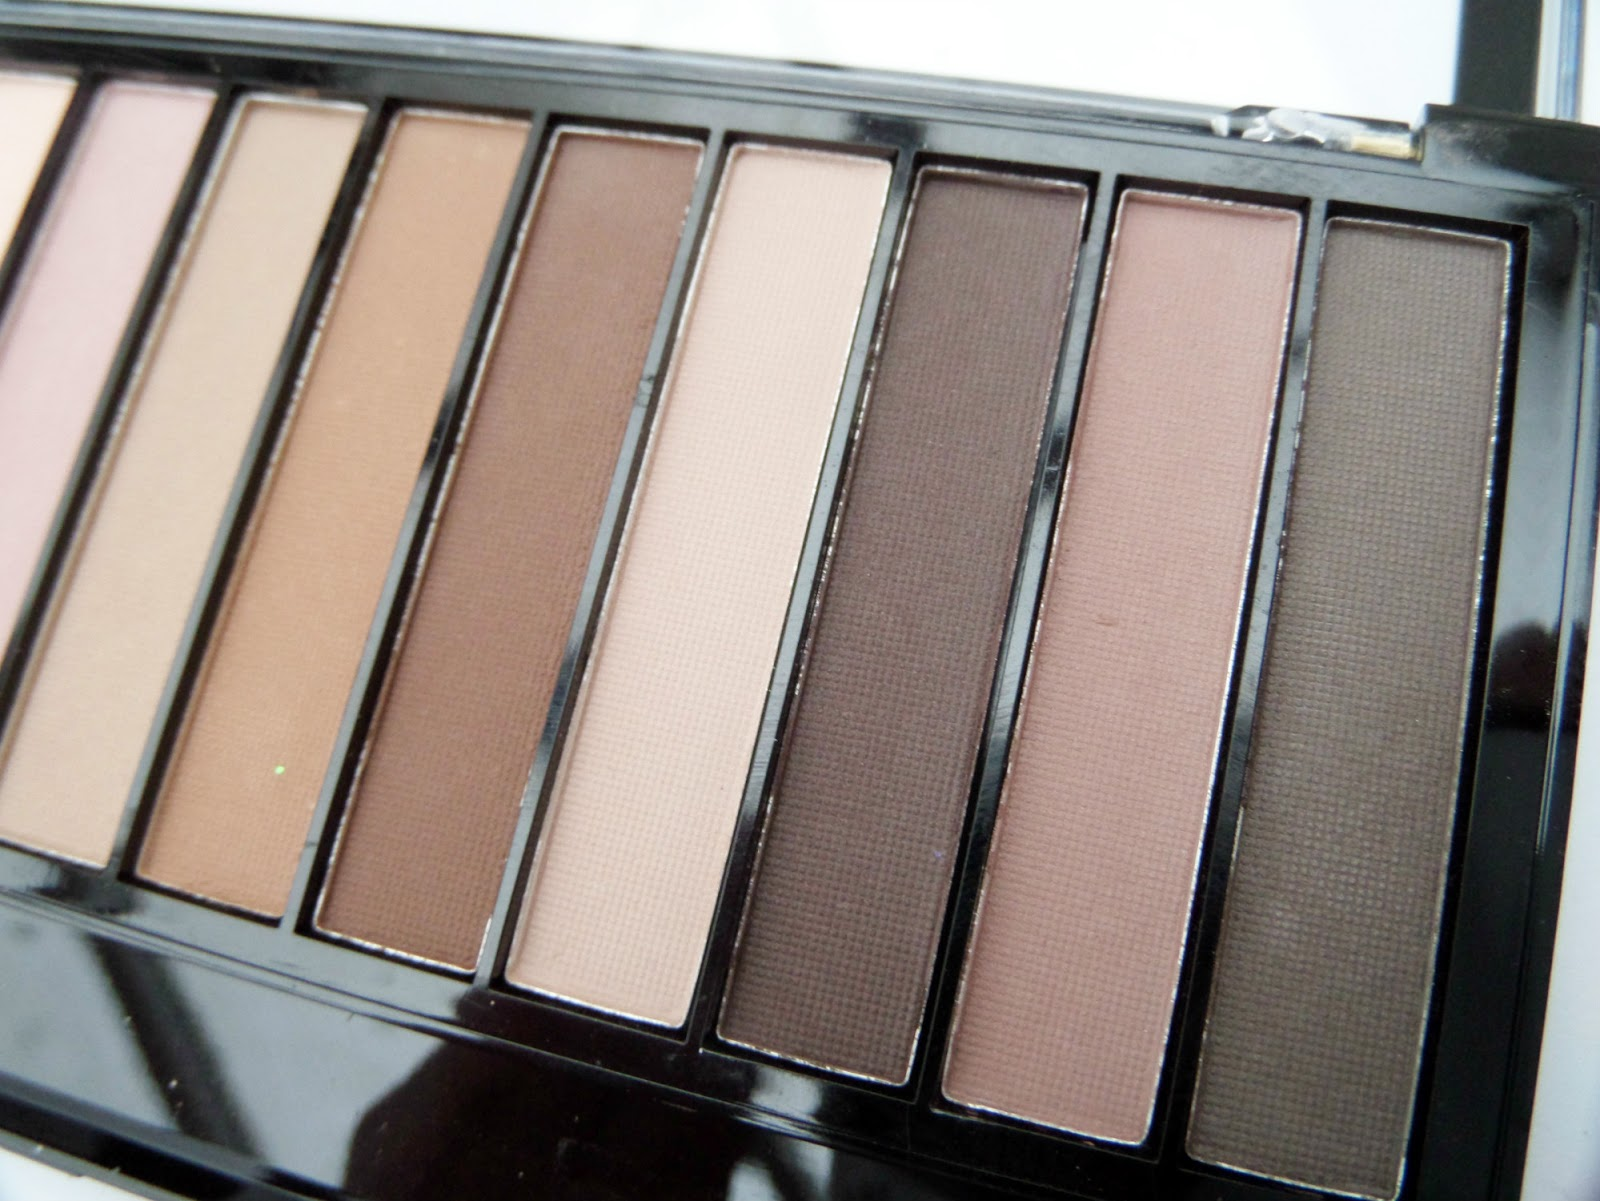 The Makeup Revolution Essential Mattes 2 Palette